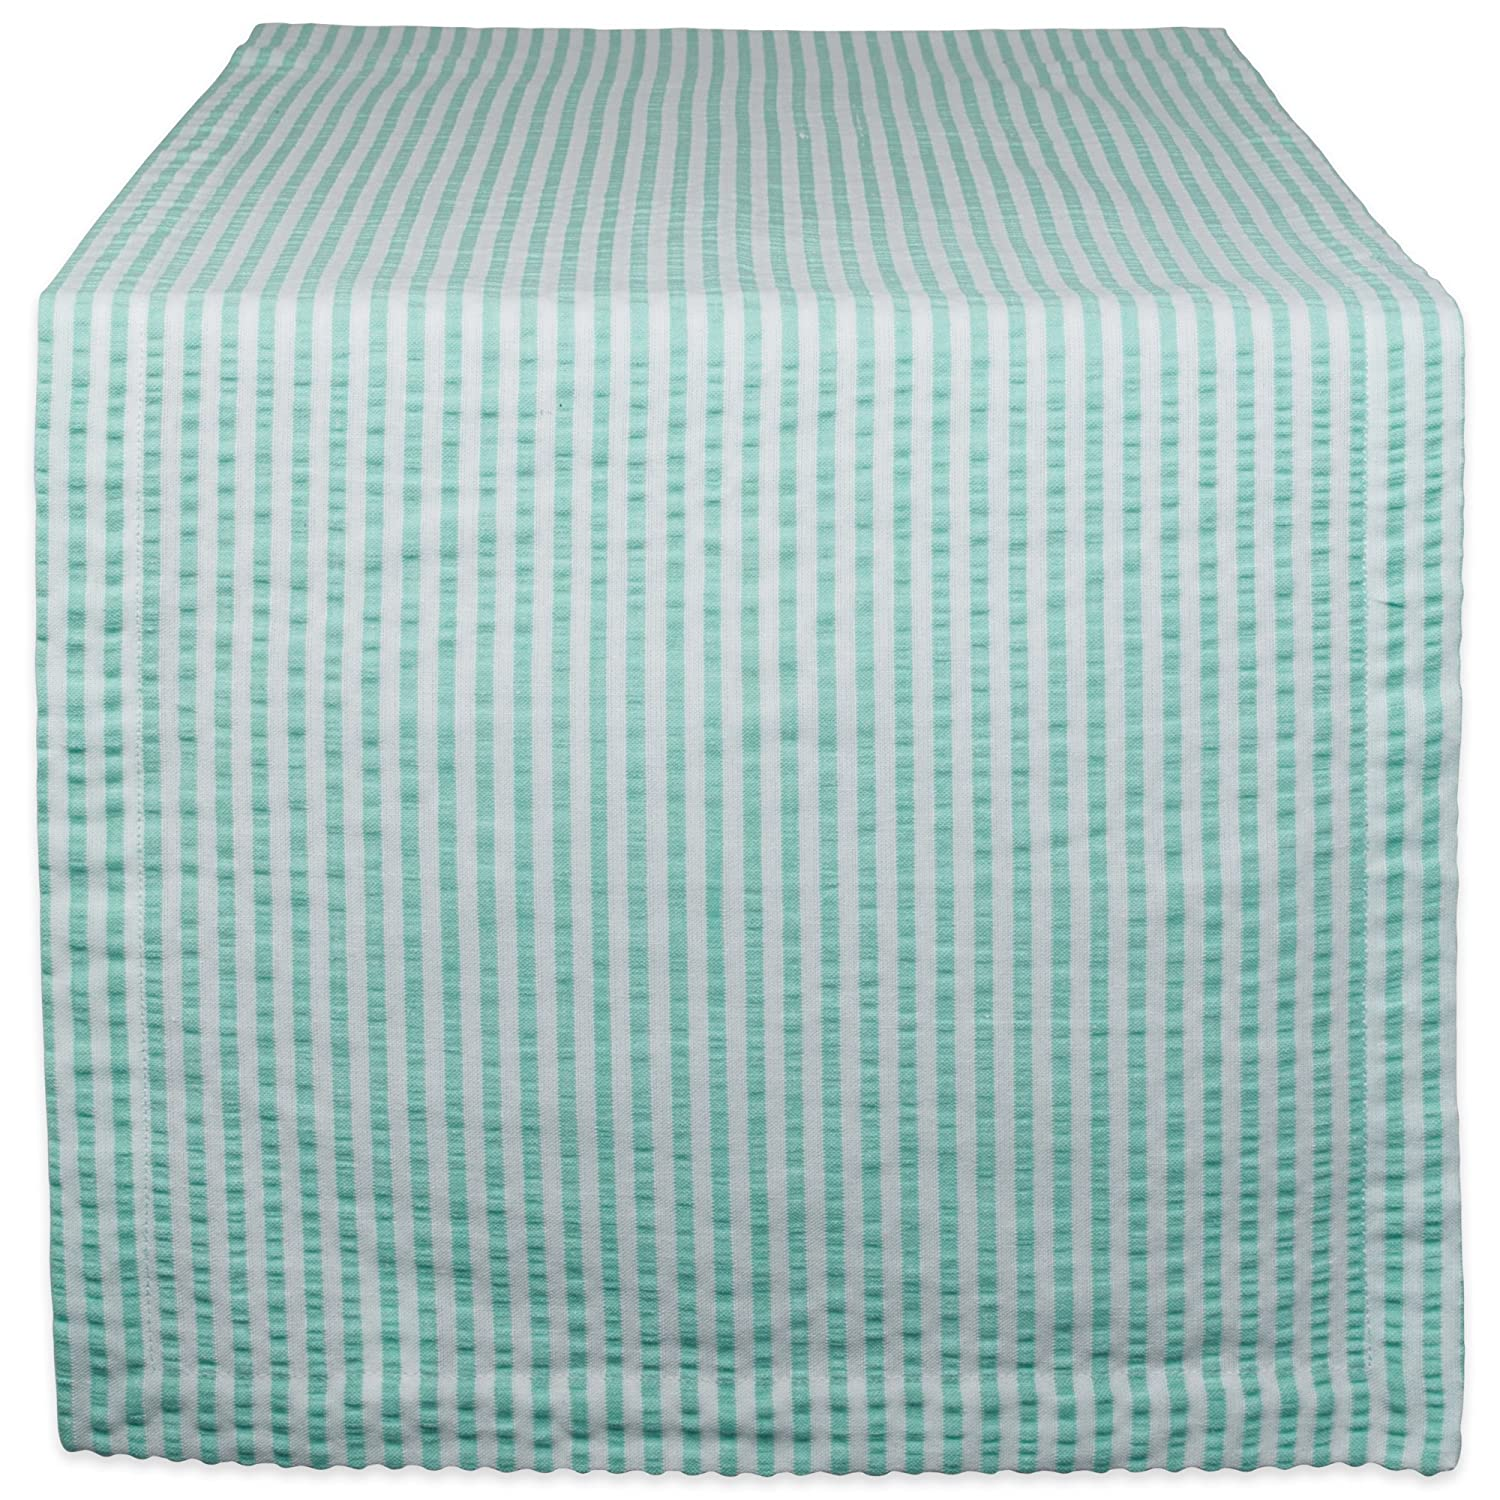 DII Cotton Seersucker Striped Table Runner, Bright Green & White, 14x72 CAMZ38950